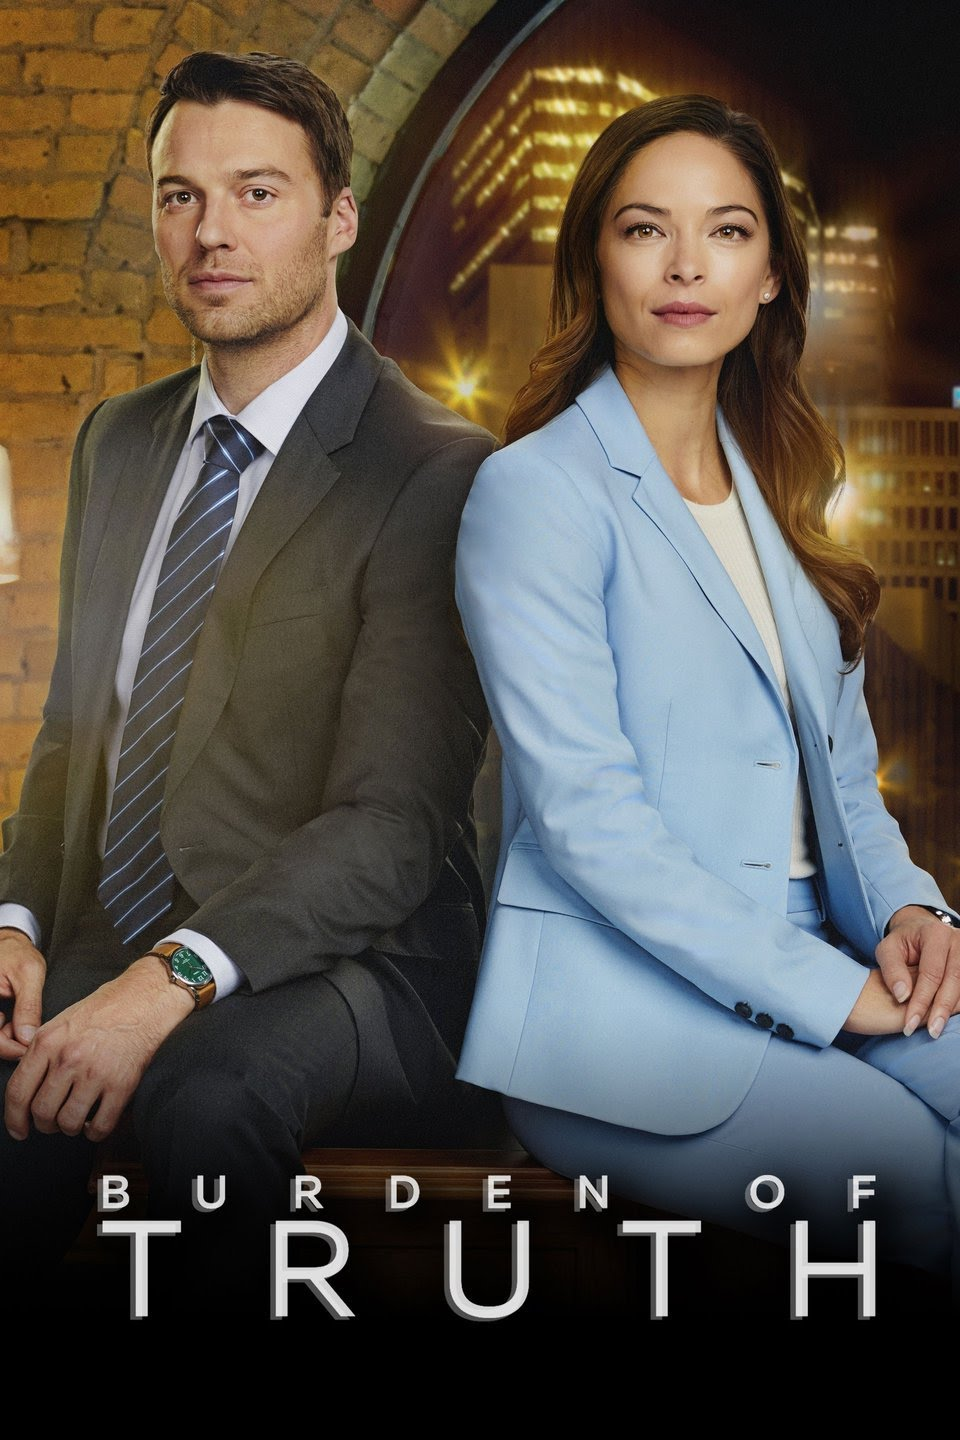 Burden of Truth kapak